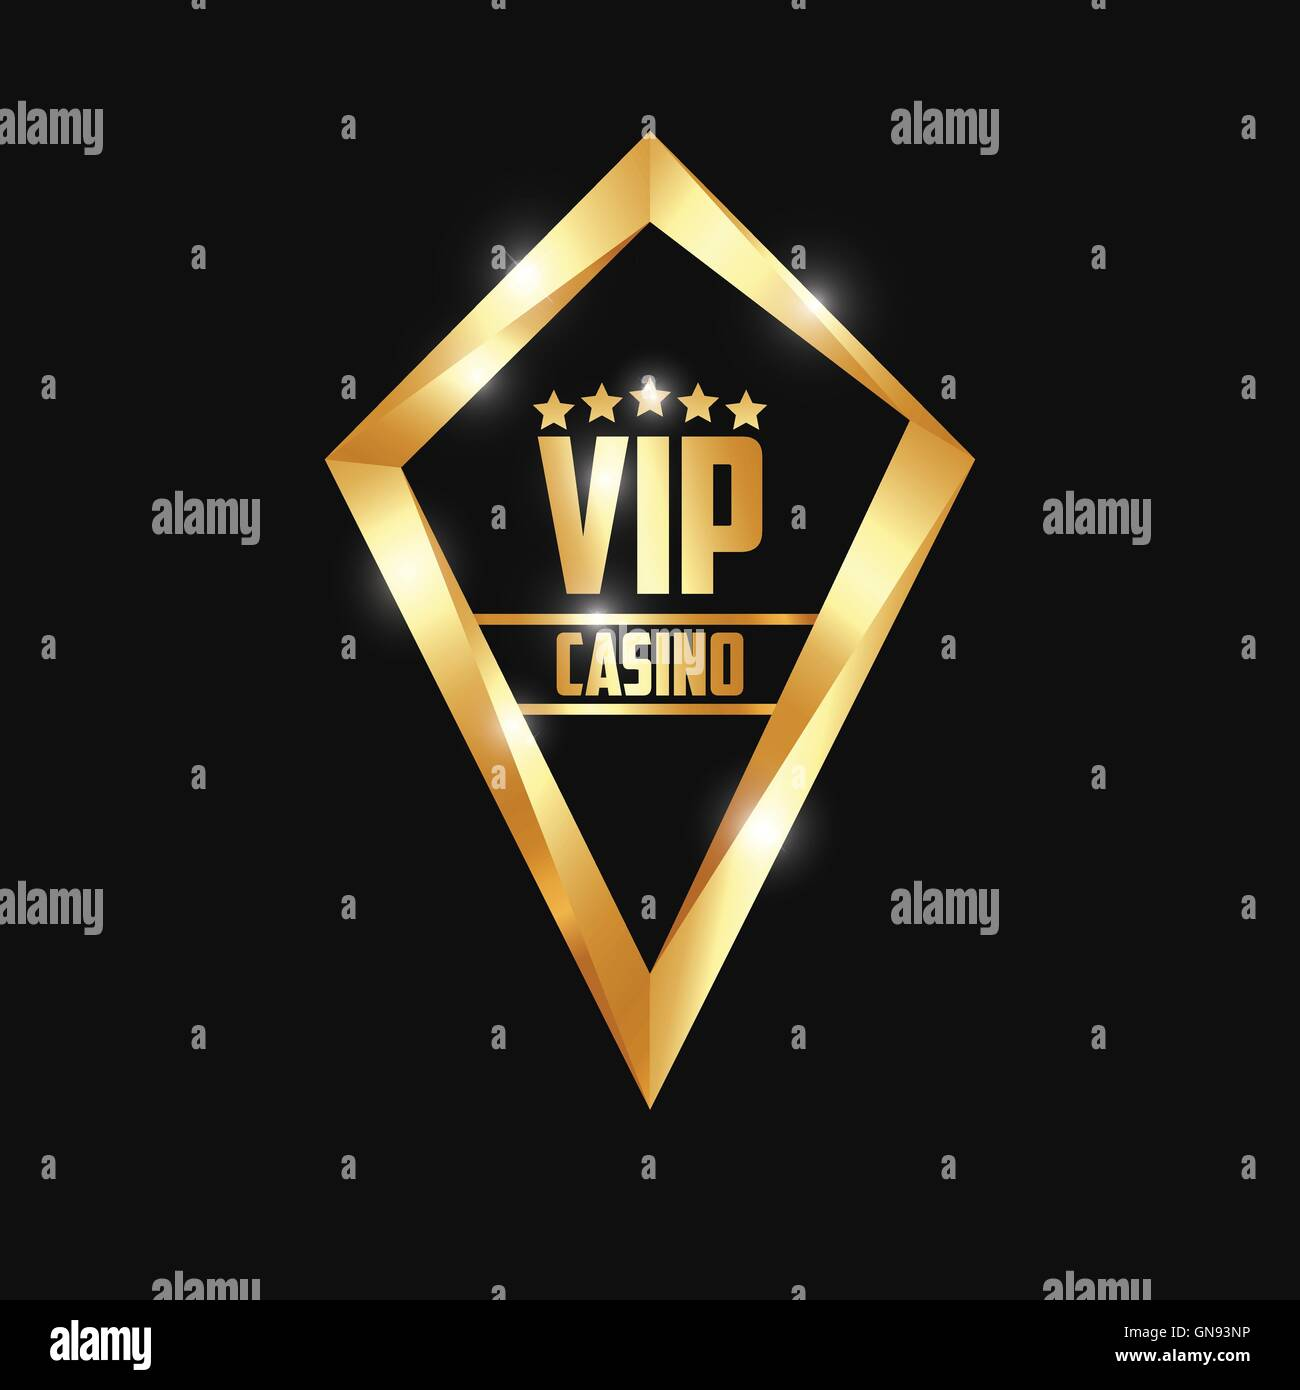 vector free royalty logo image template diamond